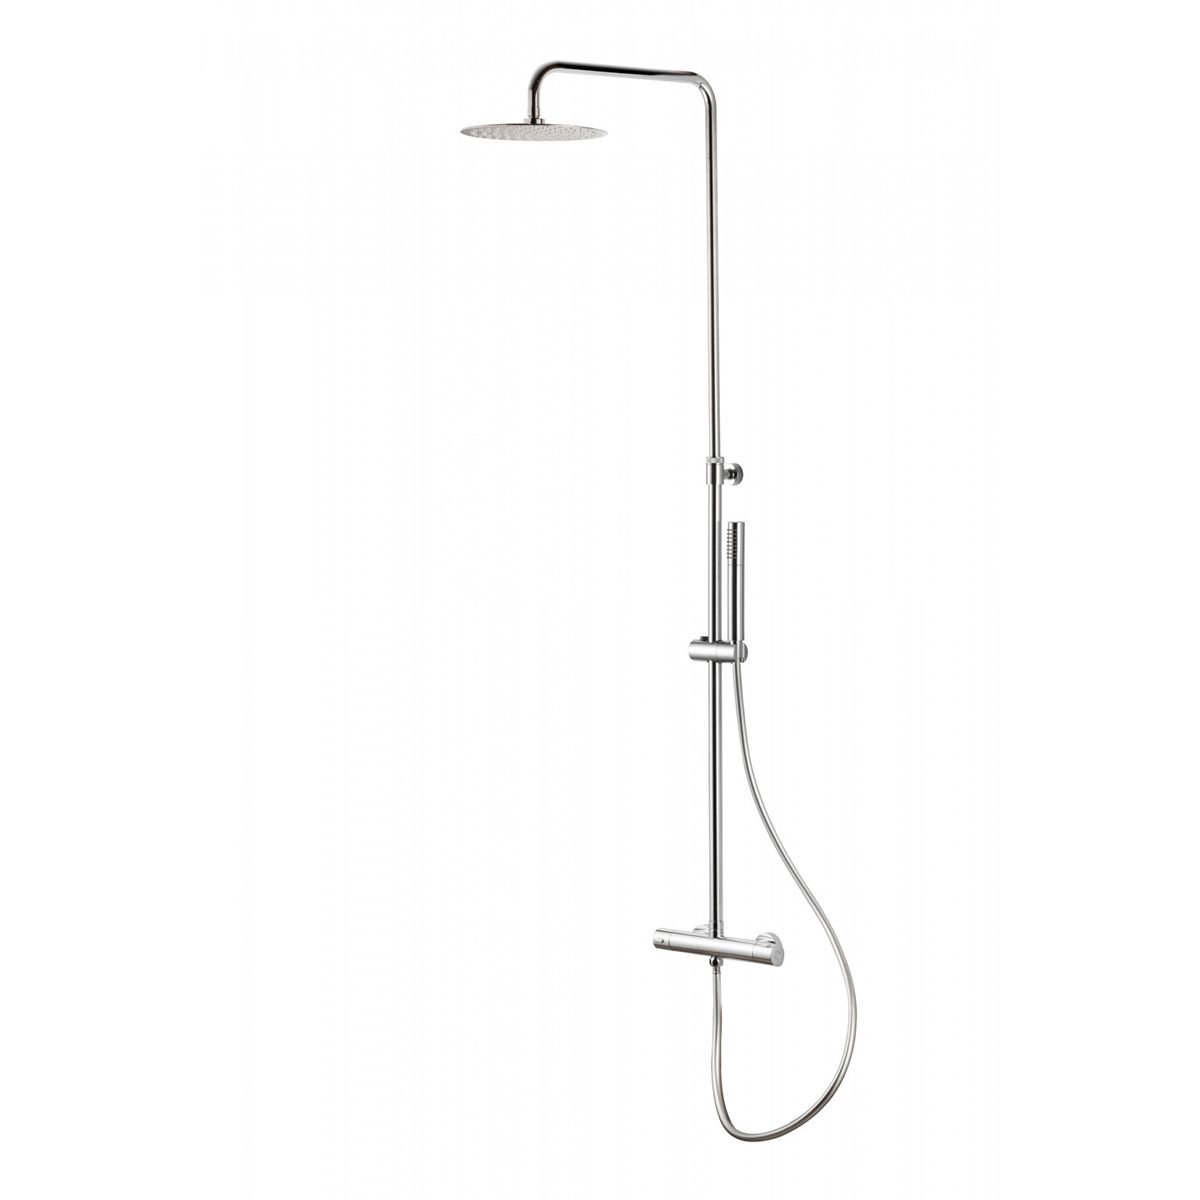 Bathrooms To Love Vema Chrome Round Bar Valve with Fixed Head and Riser Thermostatic